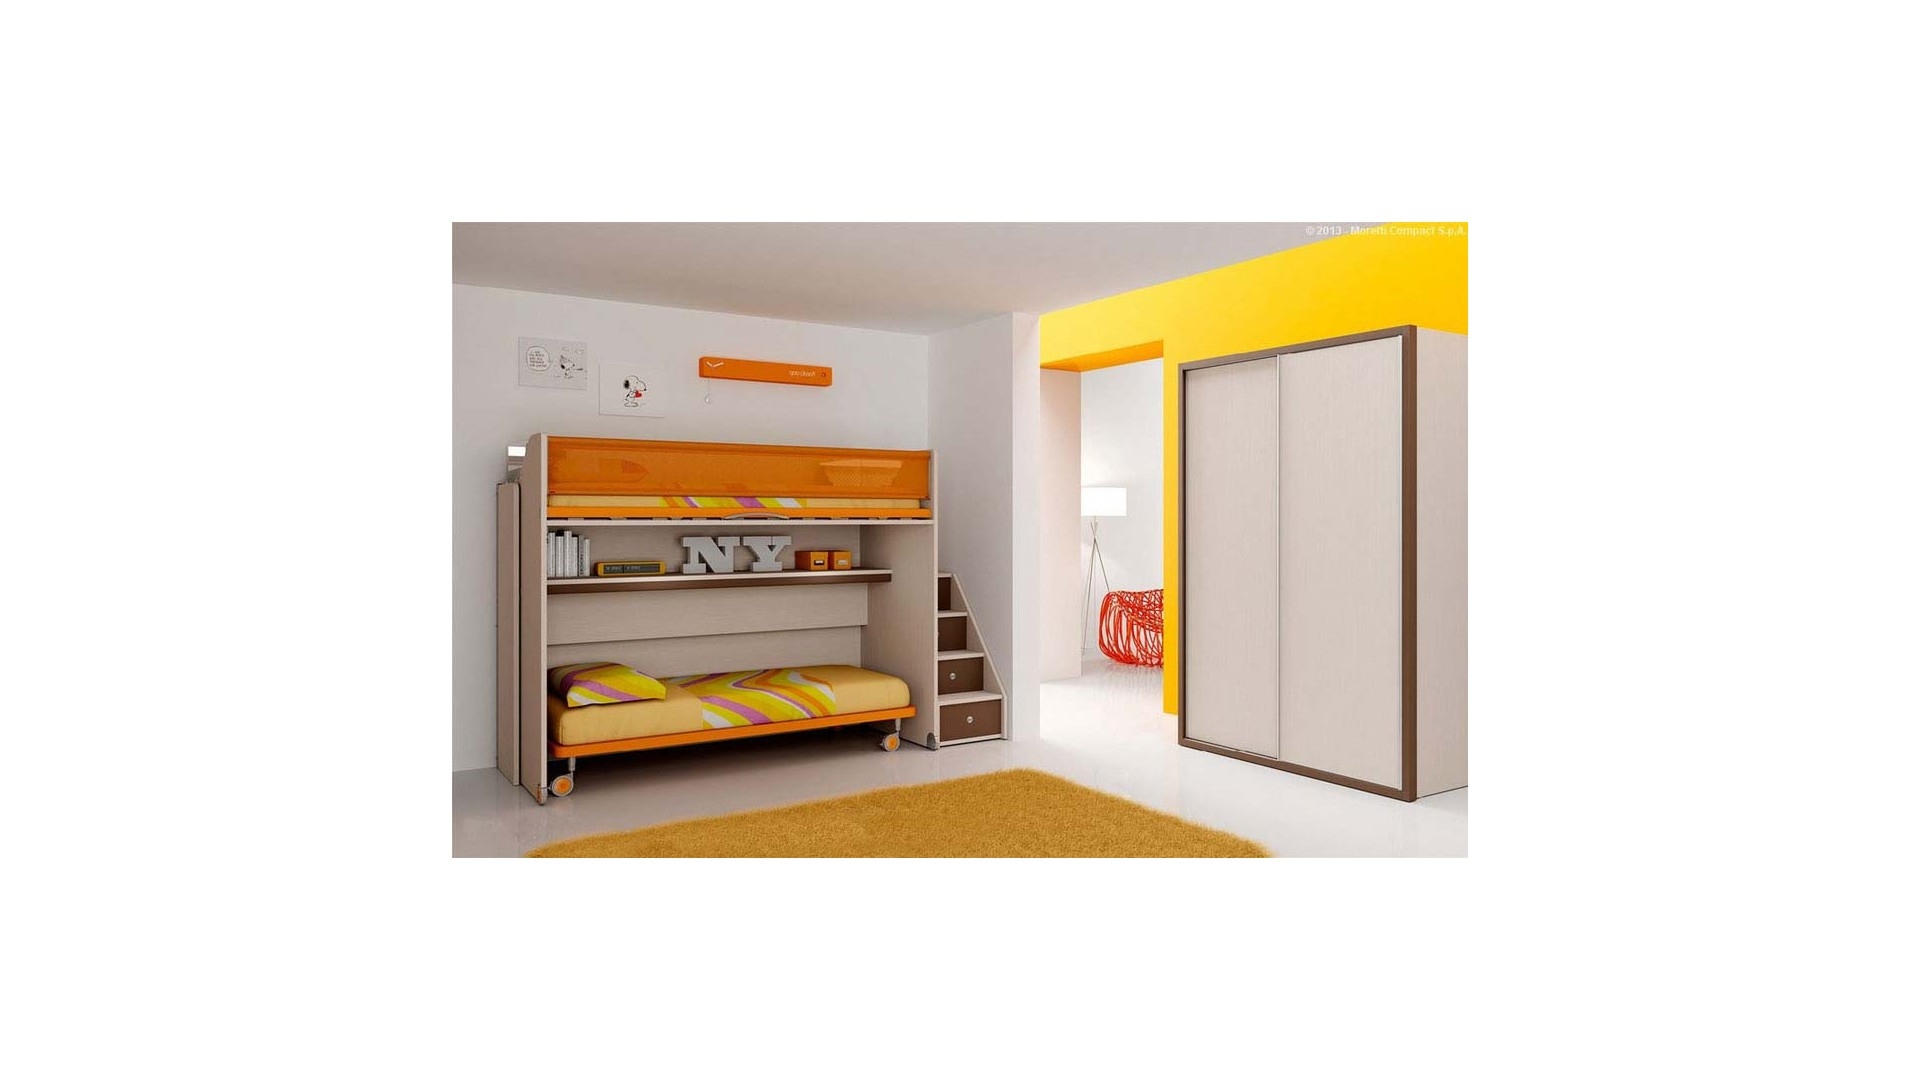 chambre enfant avec lits superpos s moretti compact so nuit. Black Bedroom Furniture Sets. Home Design Ideas